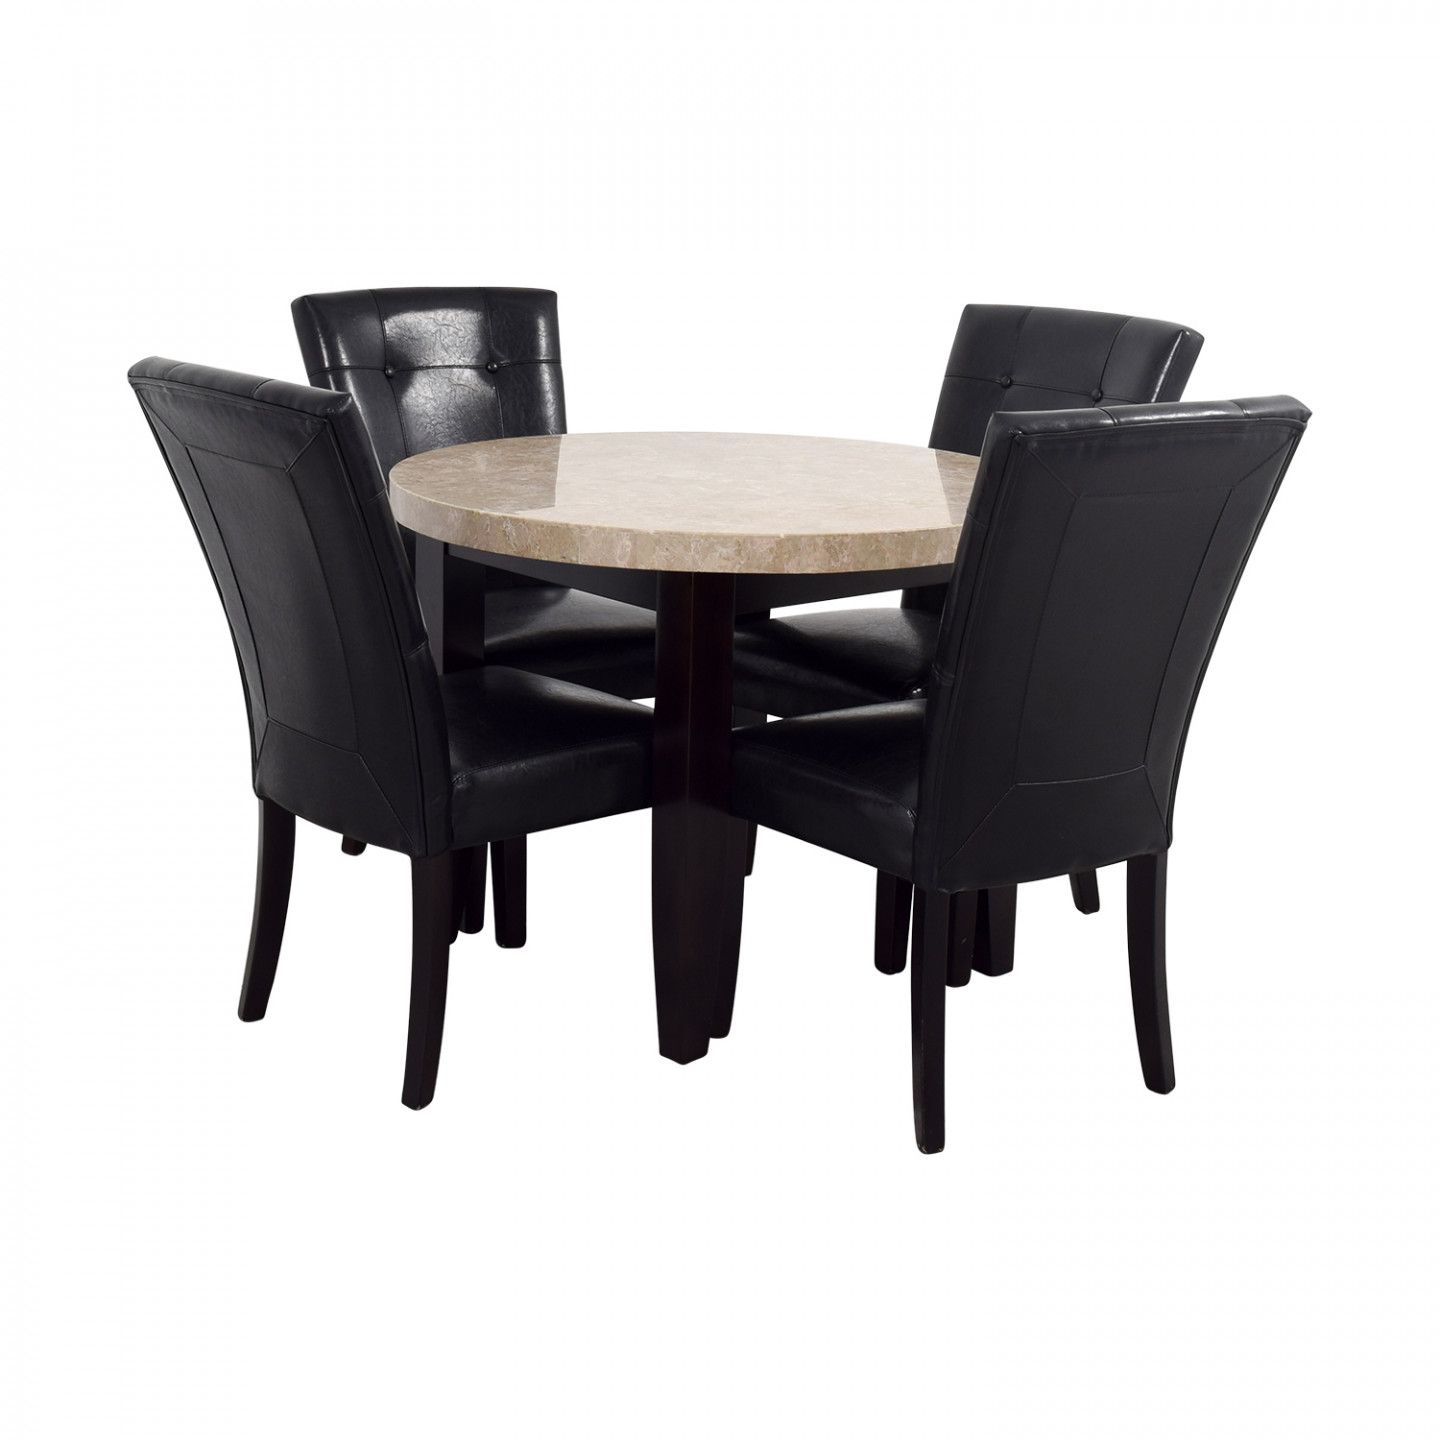 Review The Reasons Why We Love Bobs Furniture Dining Room